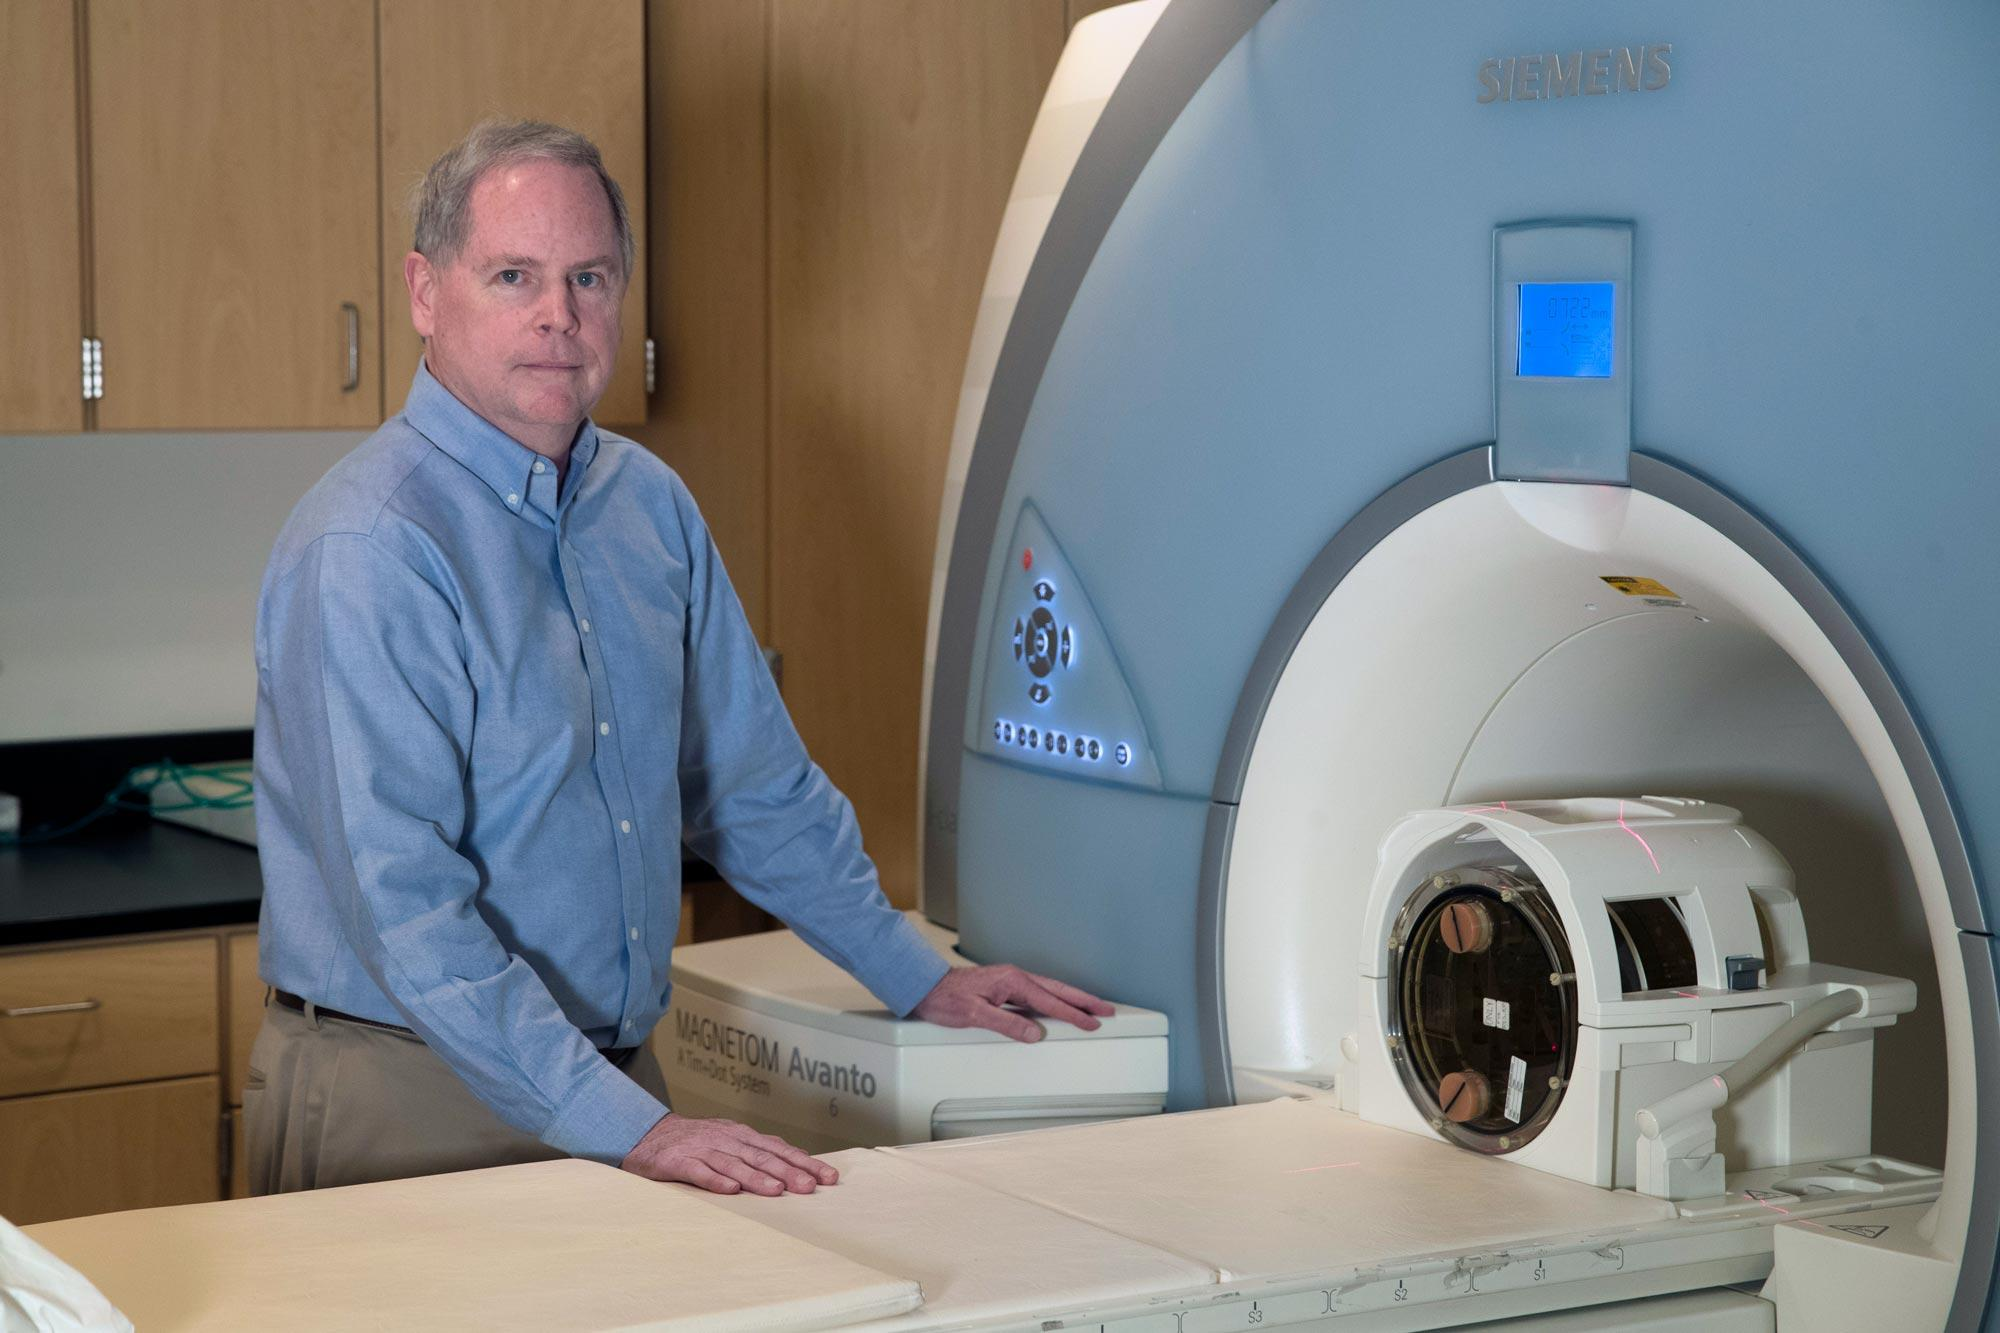 Biomedical engineer John Mugler, who pioneered new technologies that improved MRI imaging, has been named to the National Academy of Inventors.